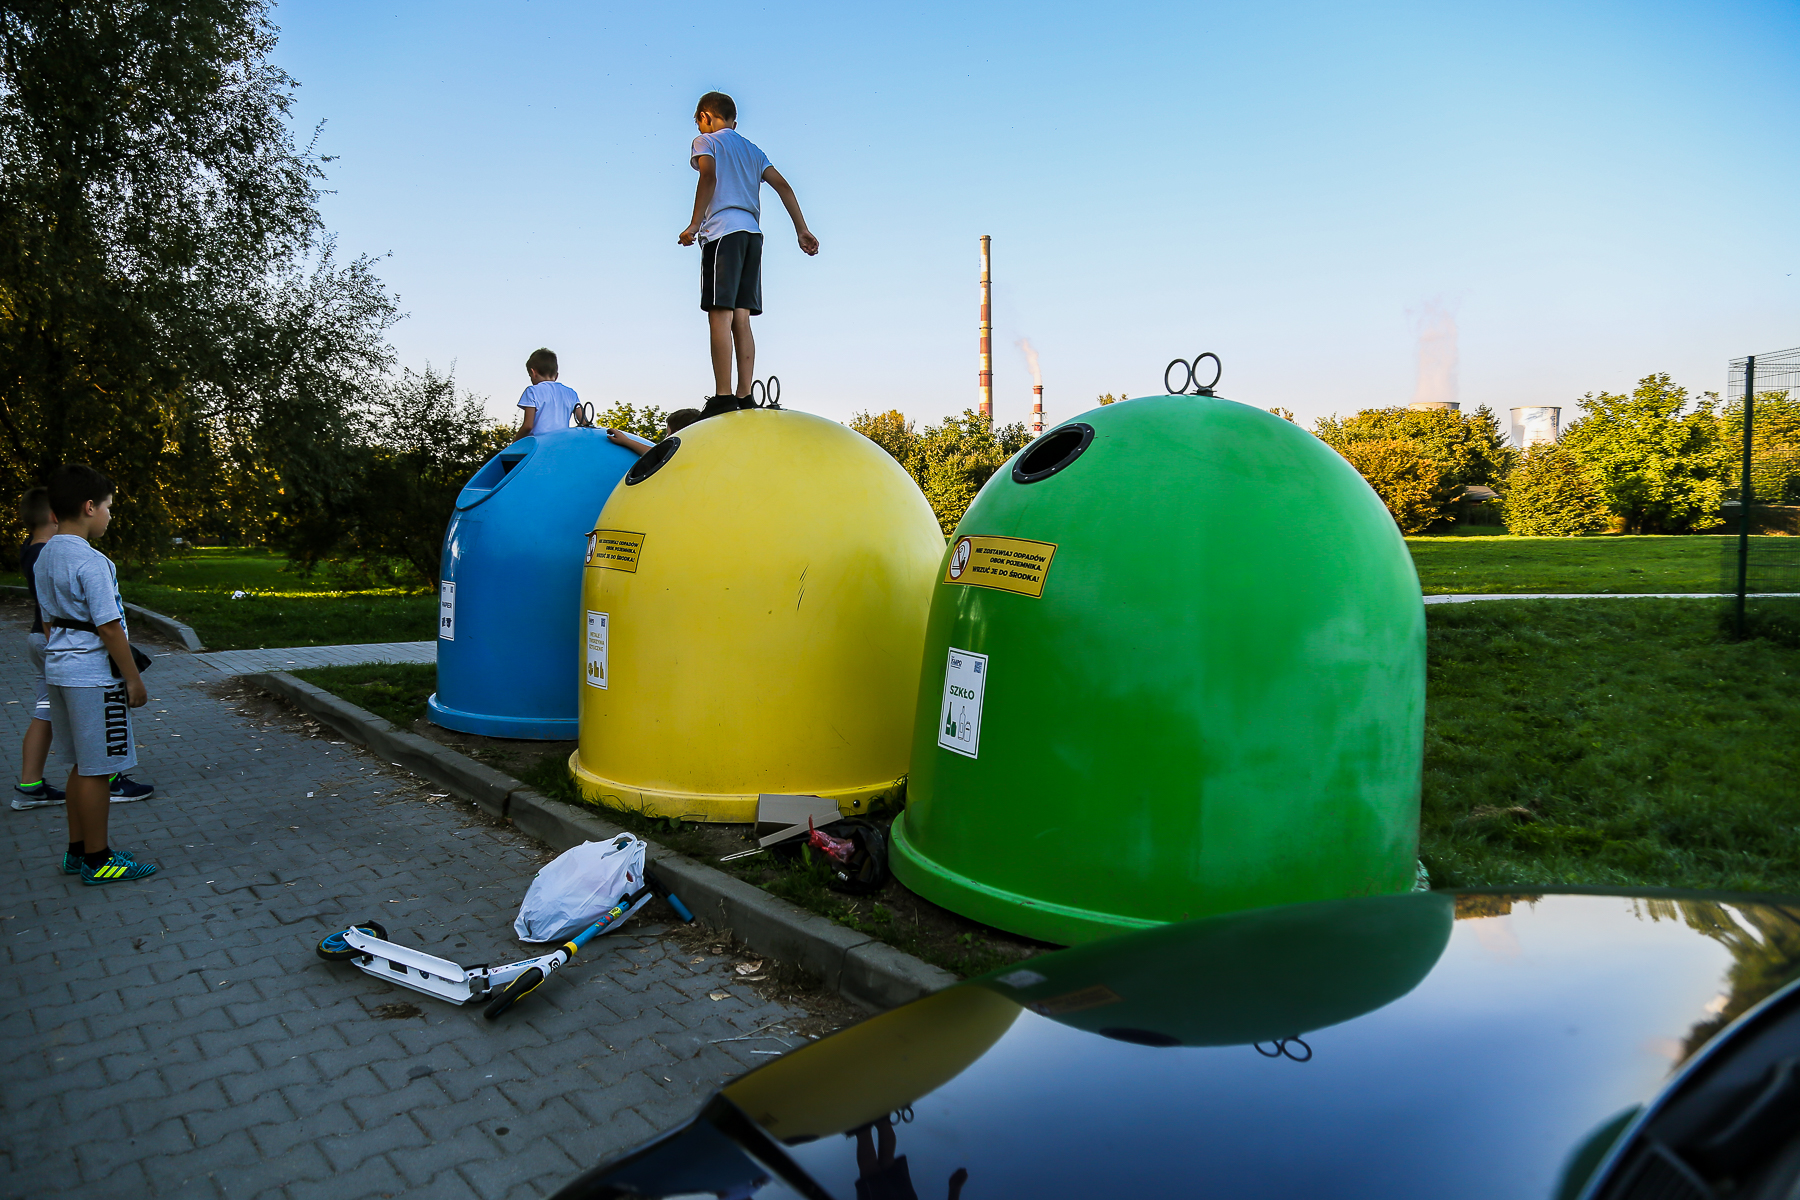 Gioia_Kuss_Portraits from Poland_-Suburban Games on Recycling Bins 3.jpg